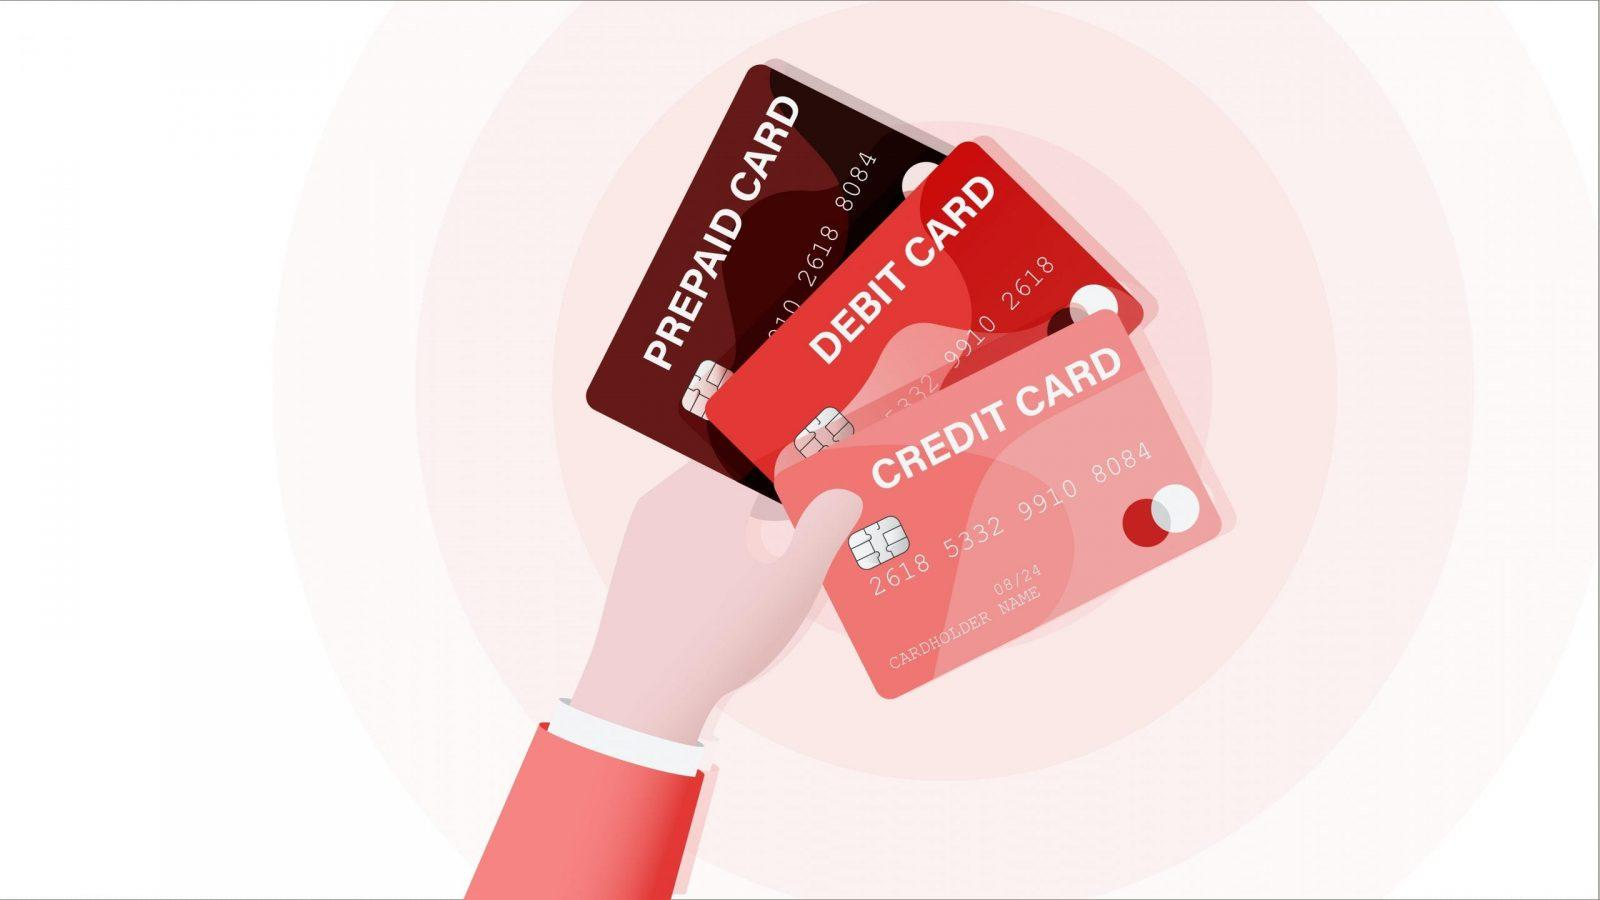 What are the different payment card types?